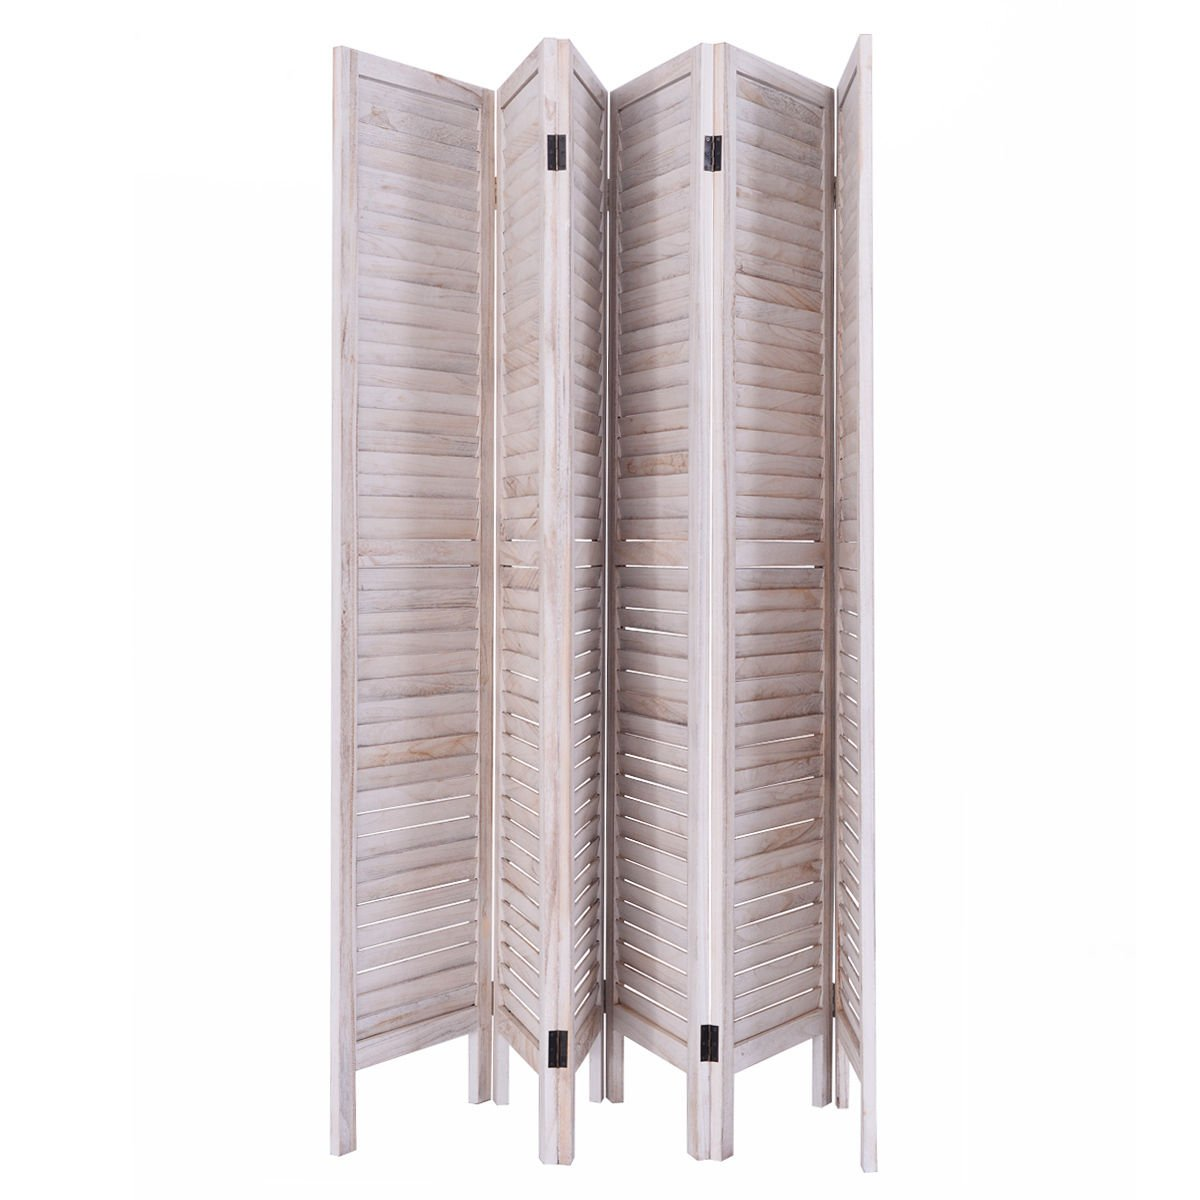 Amazing Amazon.com: Giantex 6 Panel Screen Room Divider Wood Folding Oriental  Freestanding Tall Partition Privacy Screen Room Divider (Natural): Kitchen  U0026 Dining